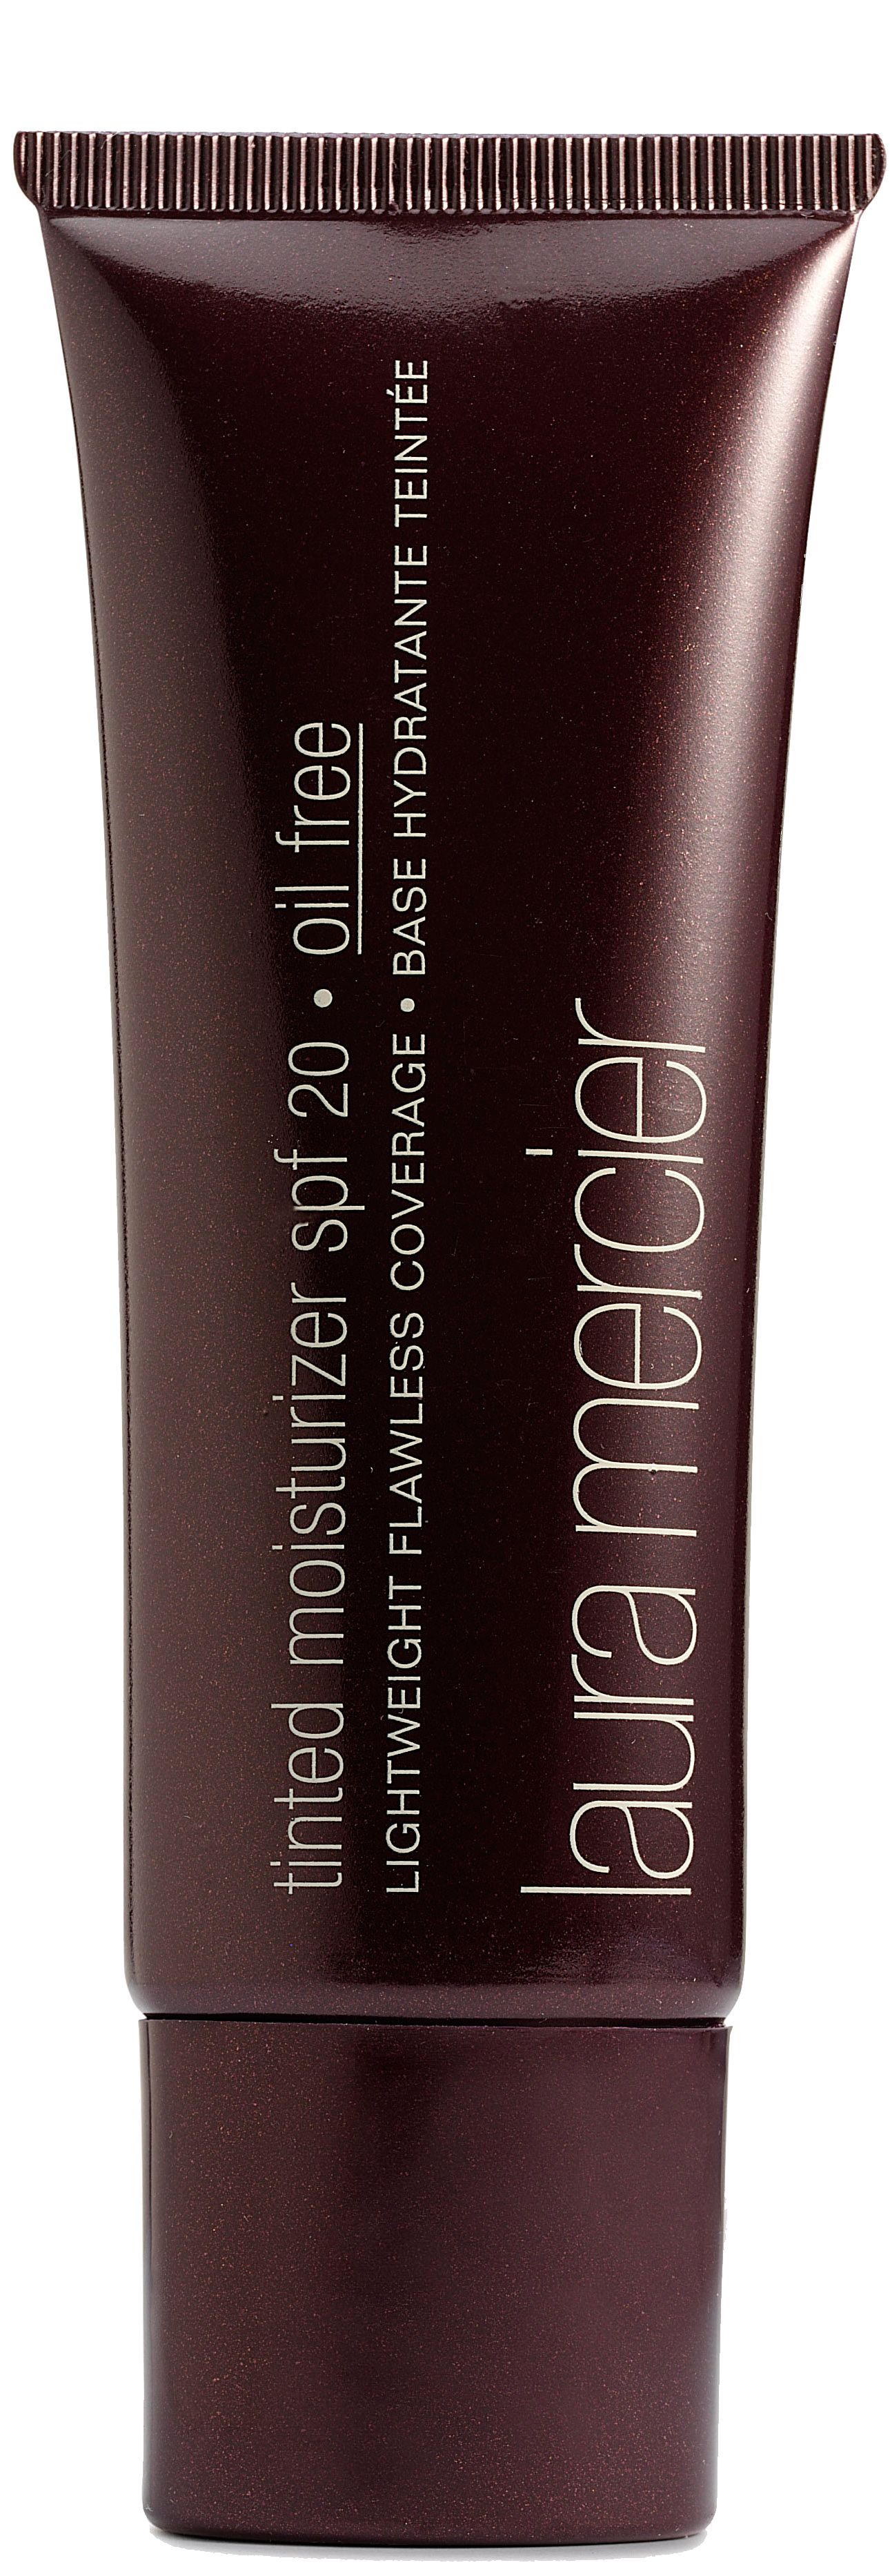 Laura Mercier OilFree Tinted Moisturizer SPF 20 Walnut